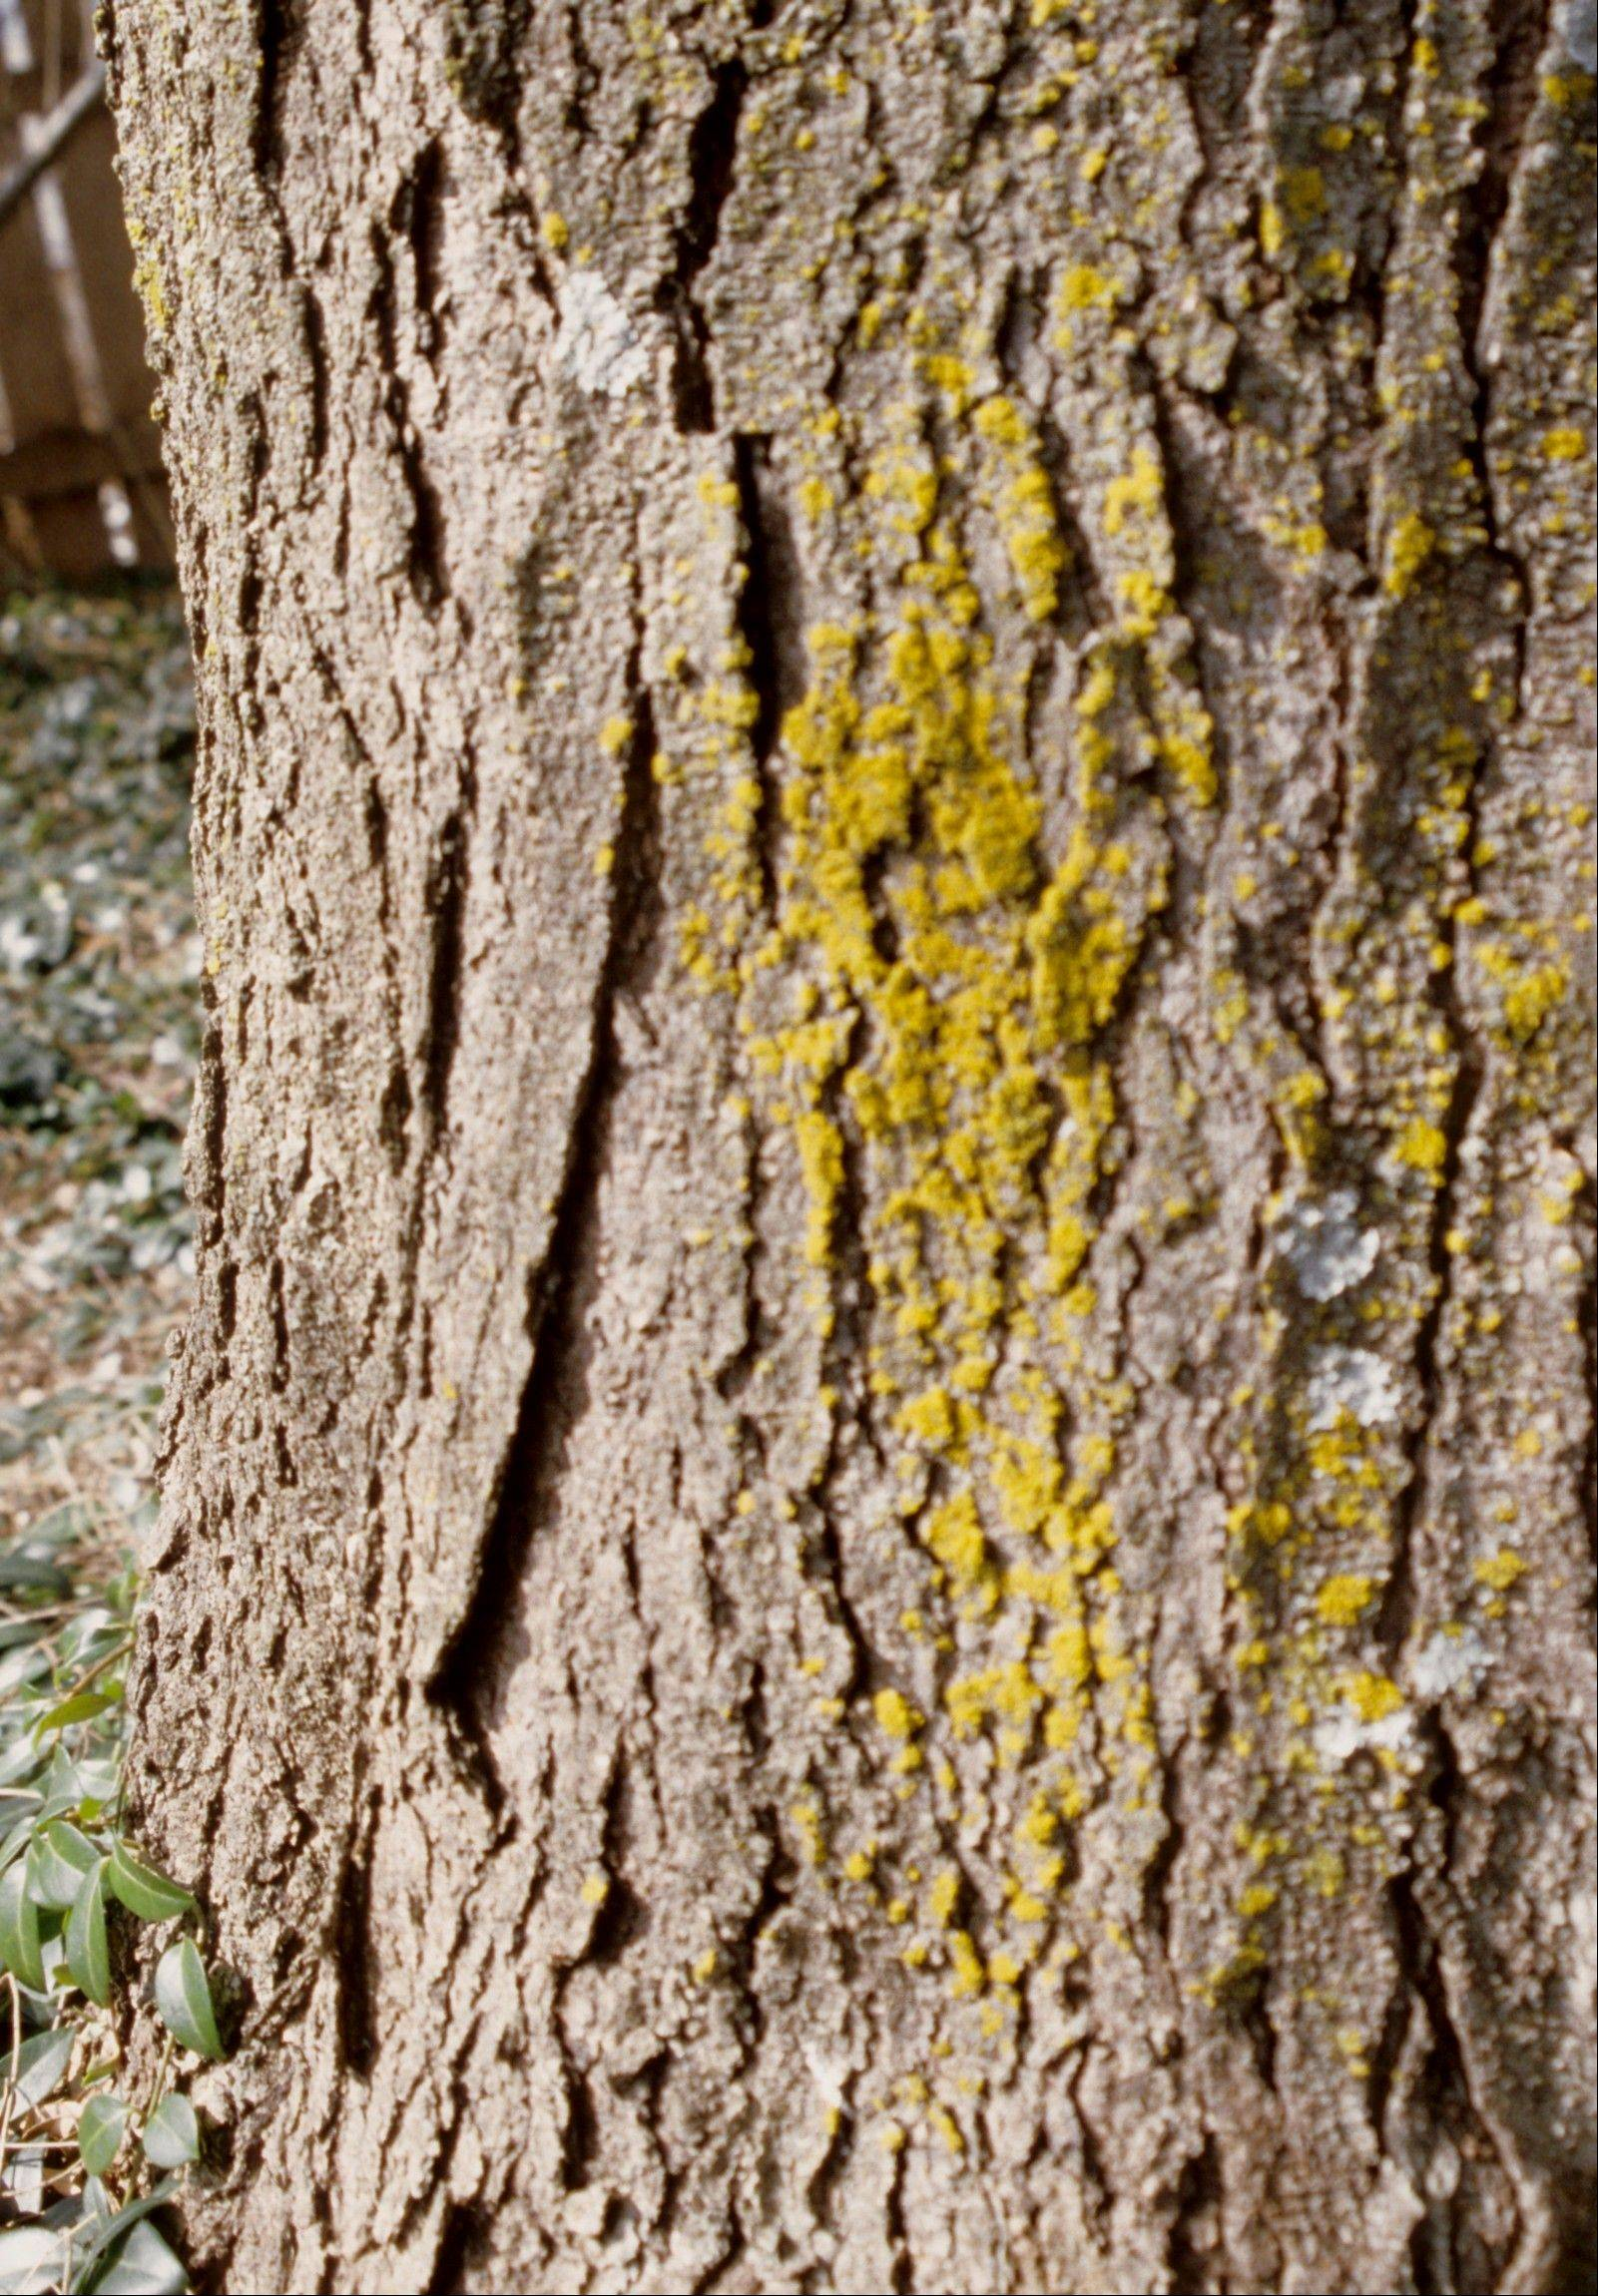 Lichens, a partnership between algae and fungi, come in different colors, can live on tree trunks for many years, and do no harm.